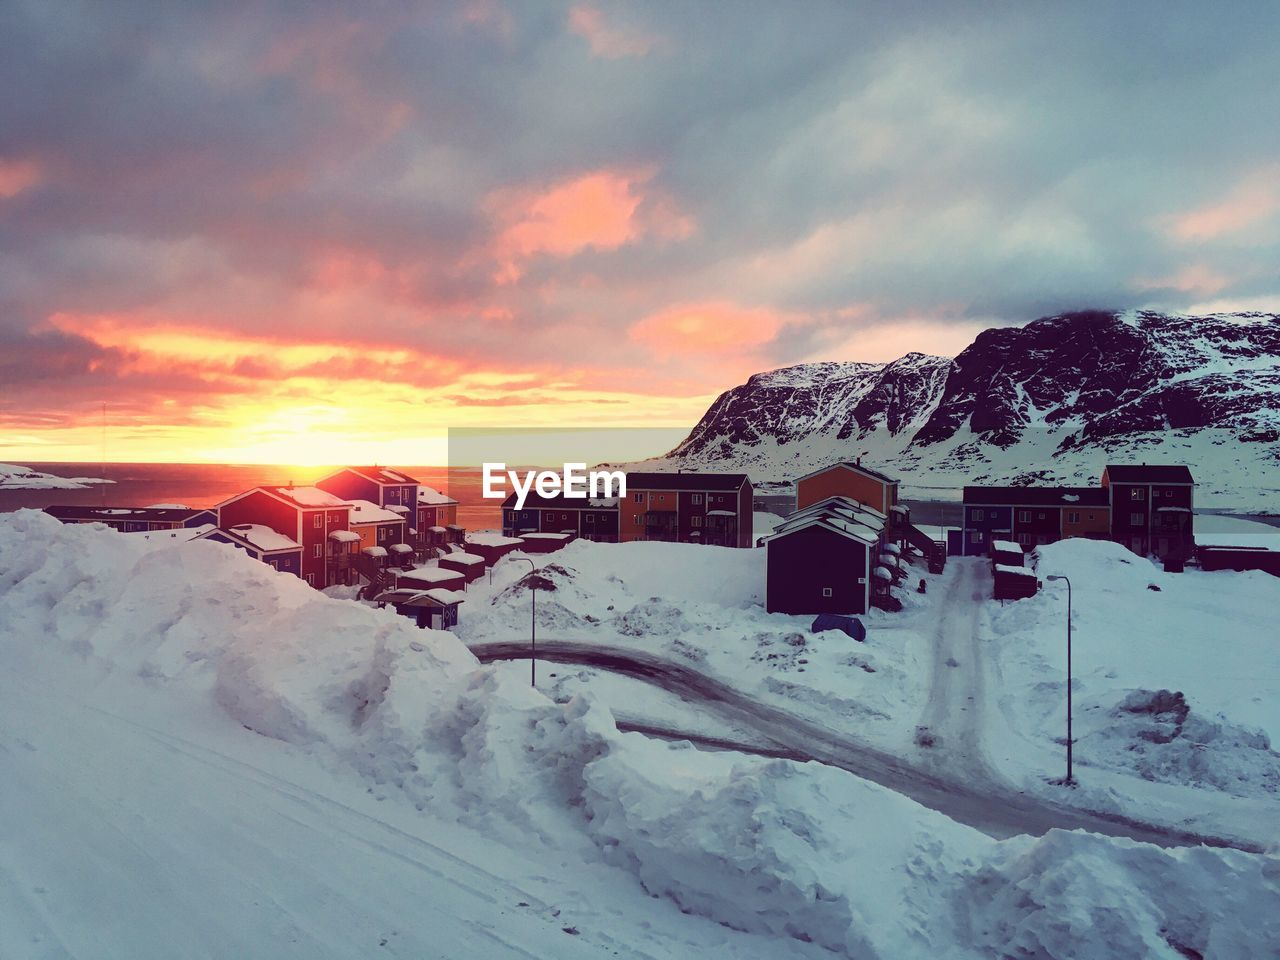 snow, winter, cold temperature, weather, sky, cloud - sky, nature, sunset, scenics, mountain, outdoors, no people, tranquil scene, beauty in nature, tranquility, frozen, transportation, built structure, mountain range, building exterior, landscape, snowdrift, day, architecture